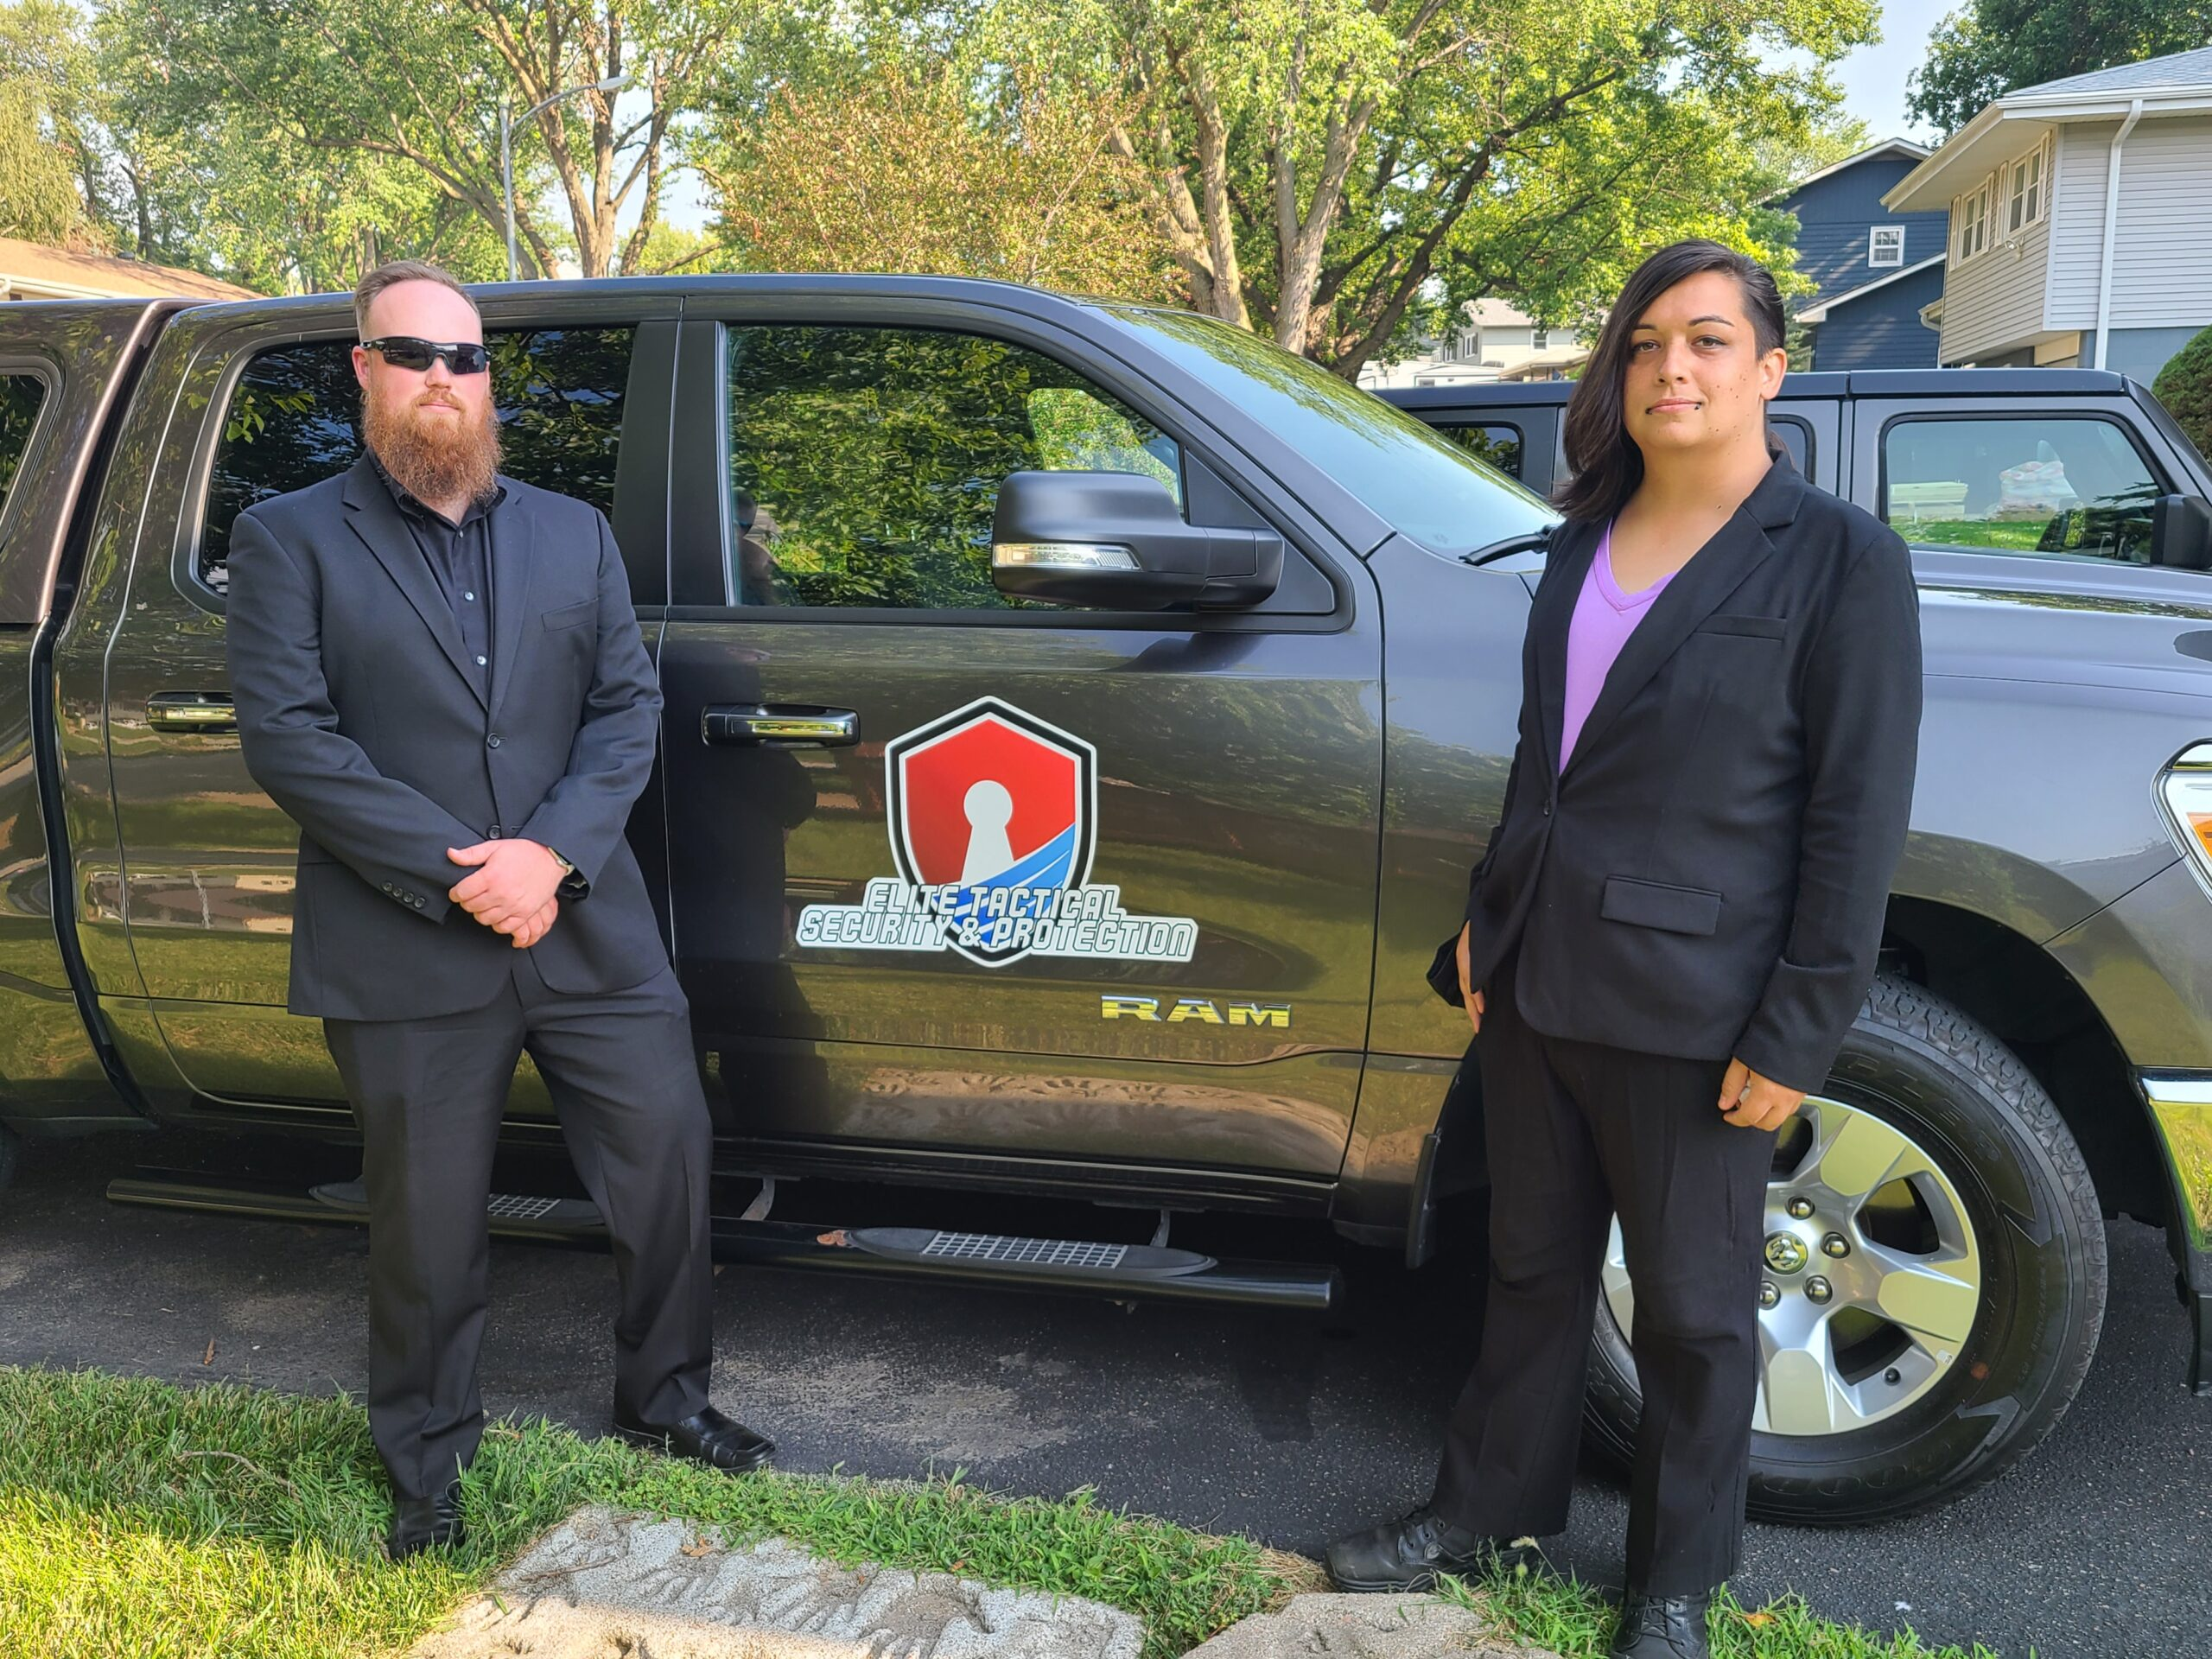 Two private security guards posing in front of an SUV with the Elite Tactical logo.